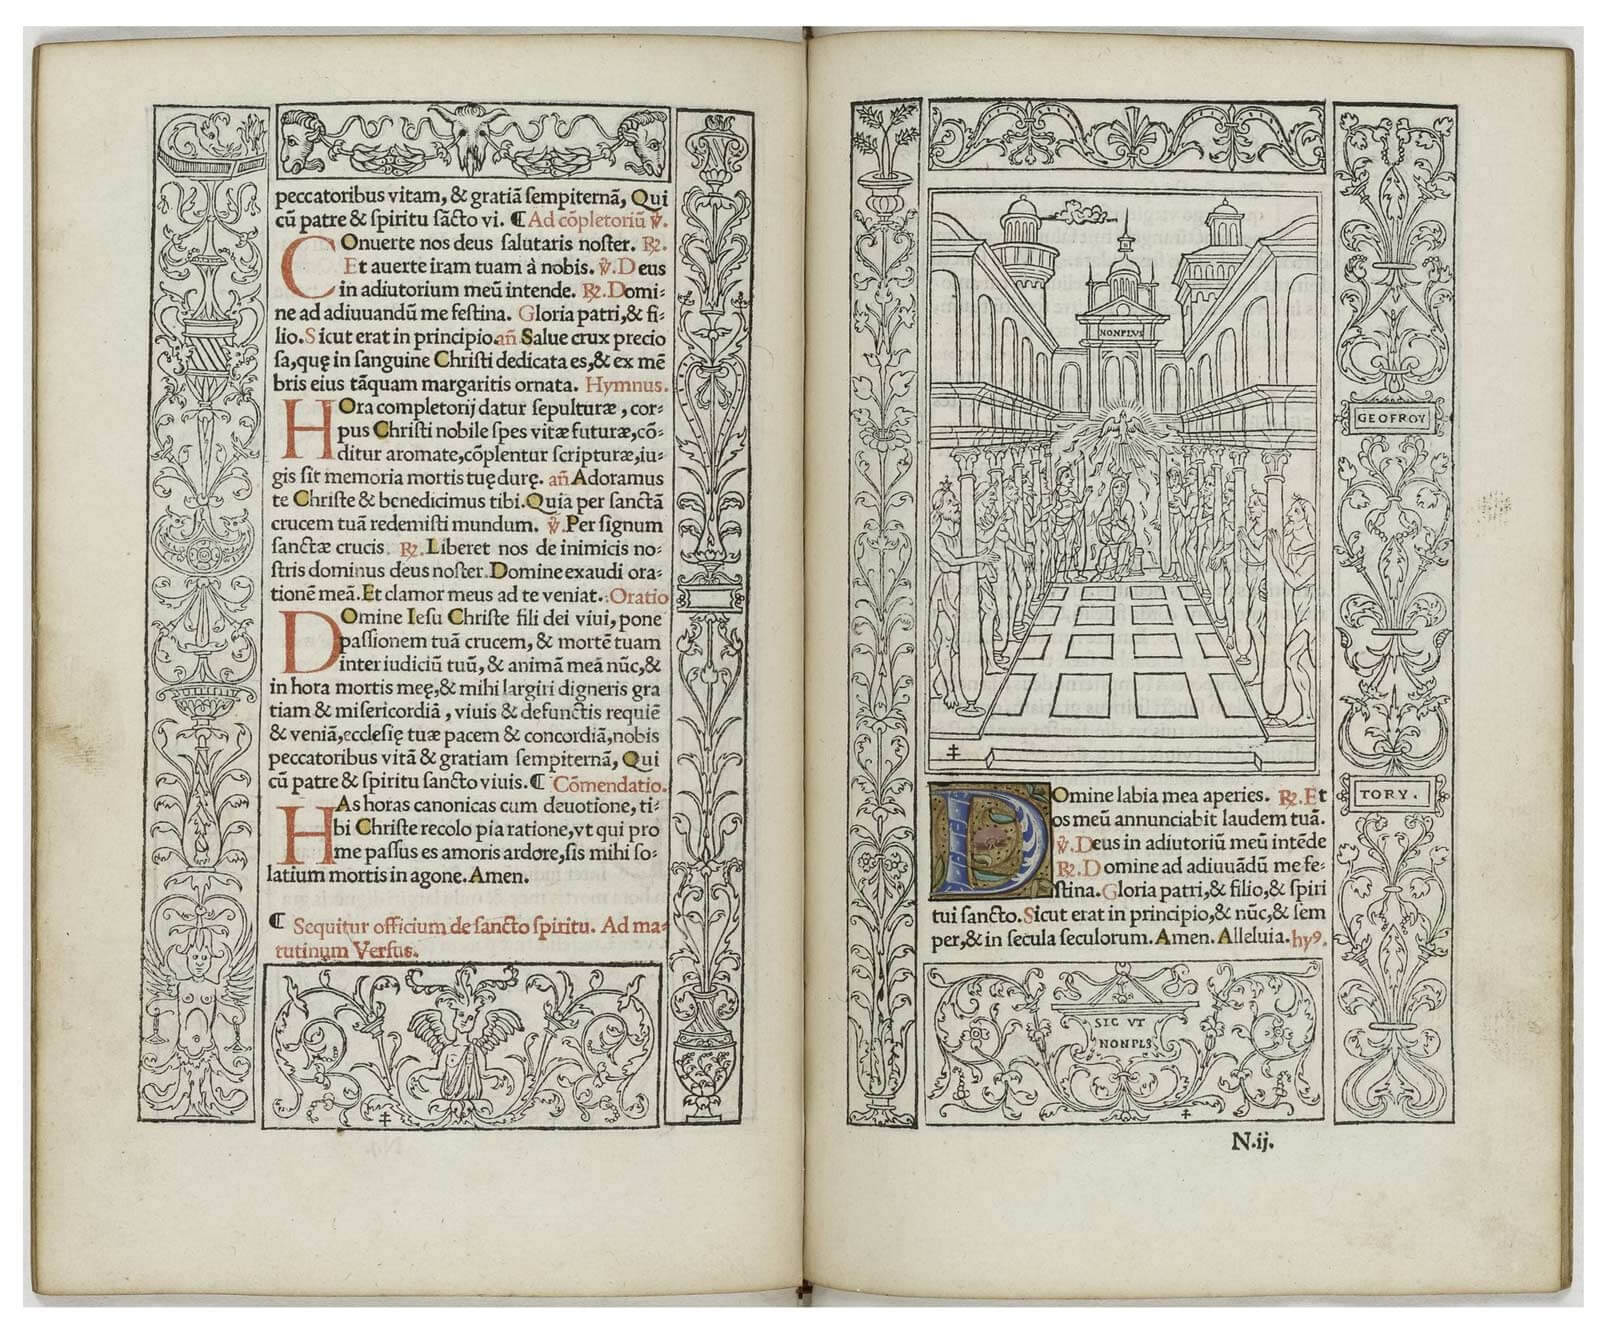 1525 Book of Hours published by Colines and Tory